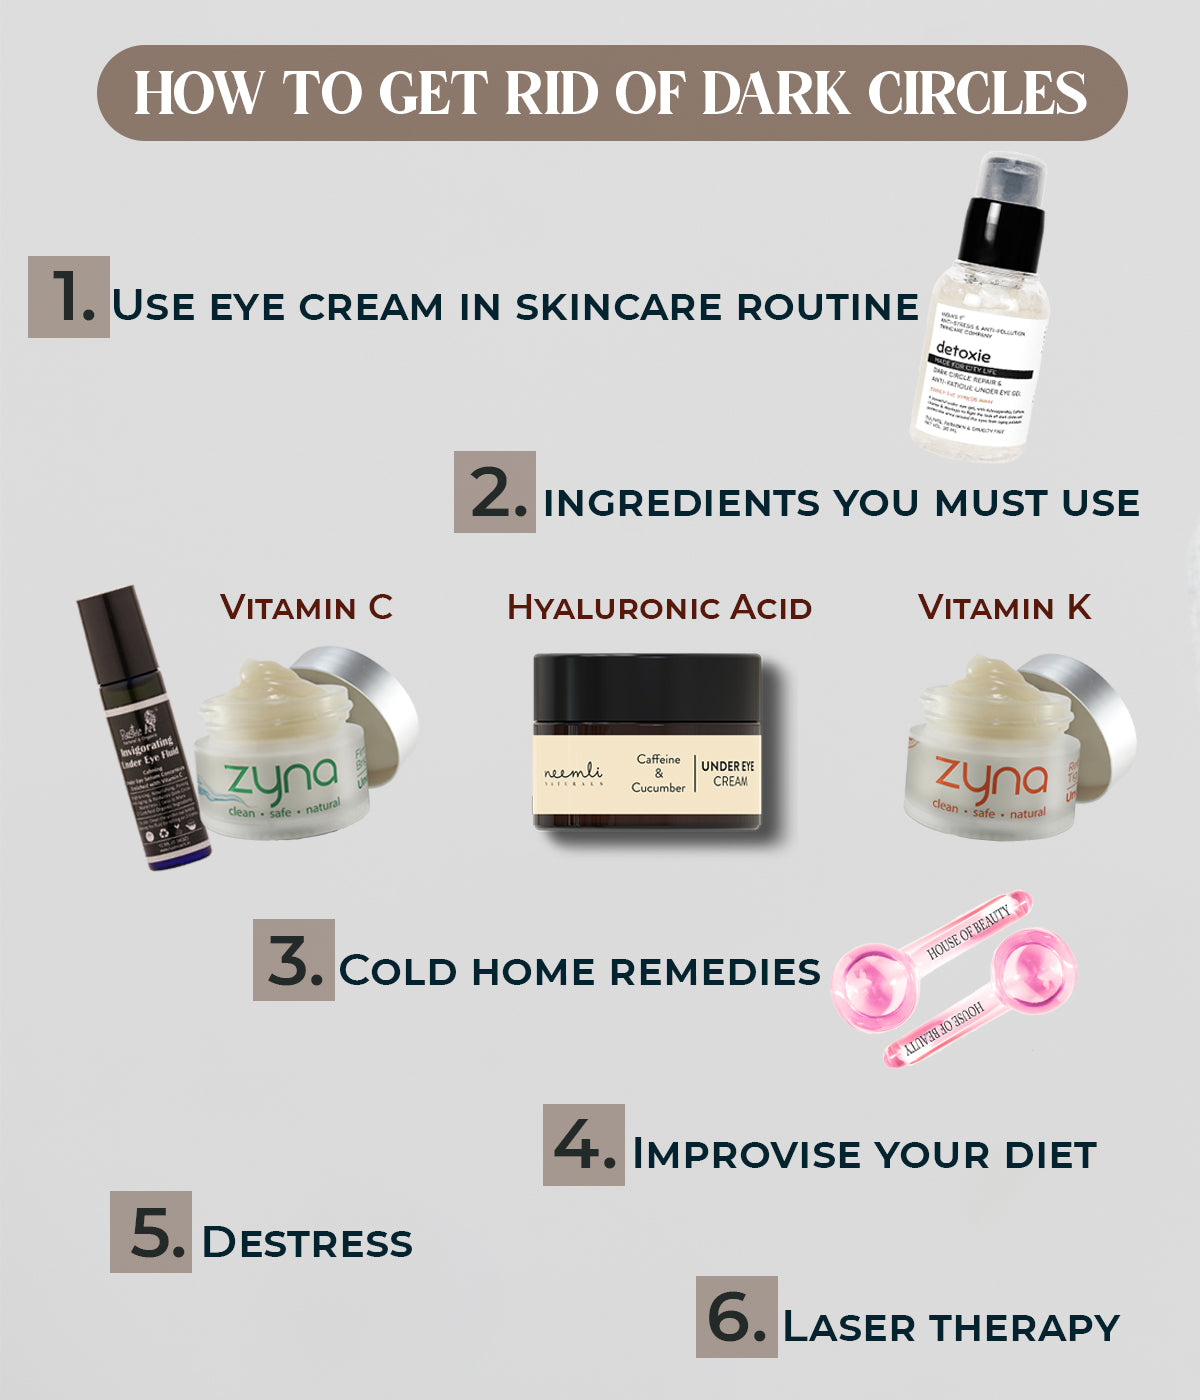 This is an image of how to get rid of dark circles